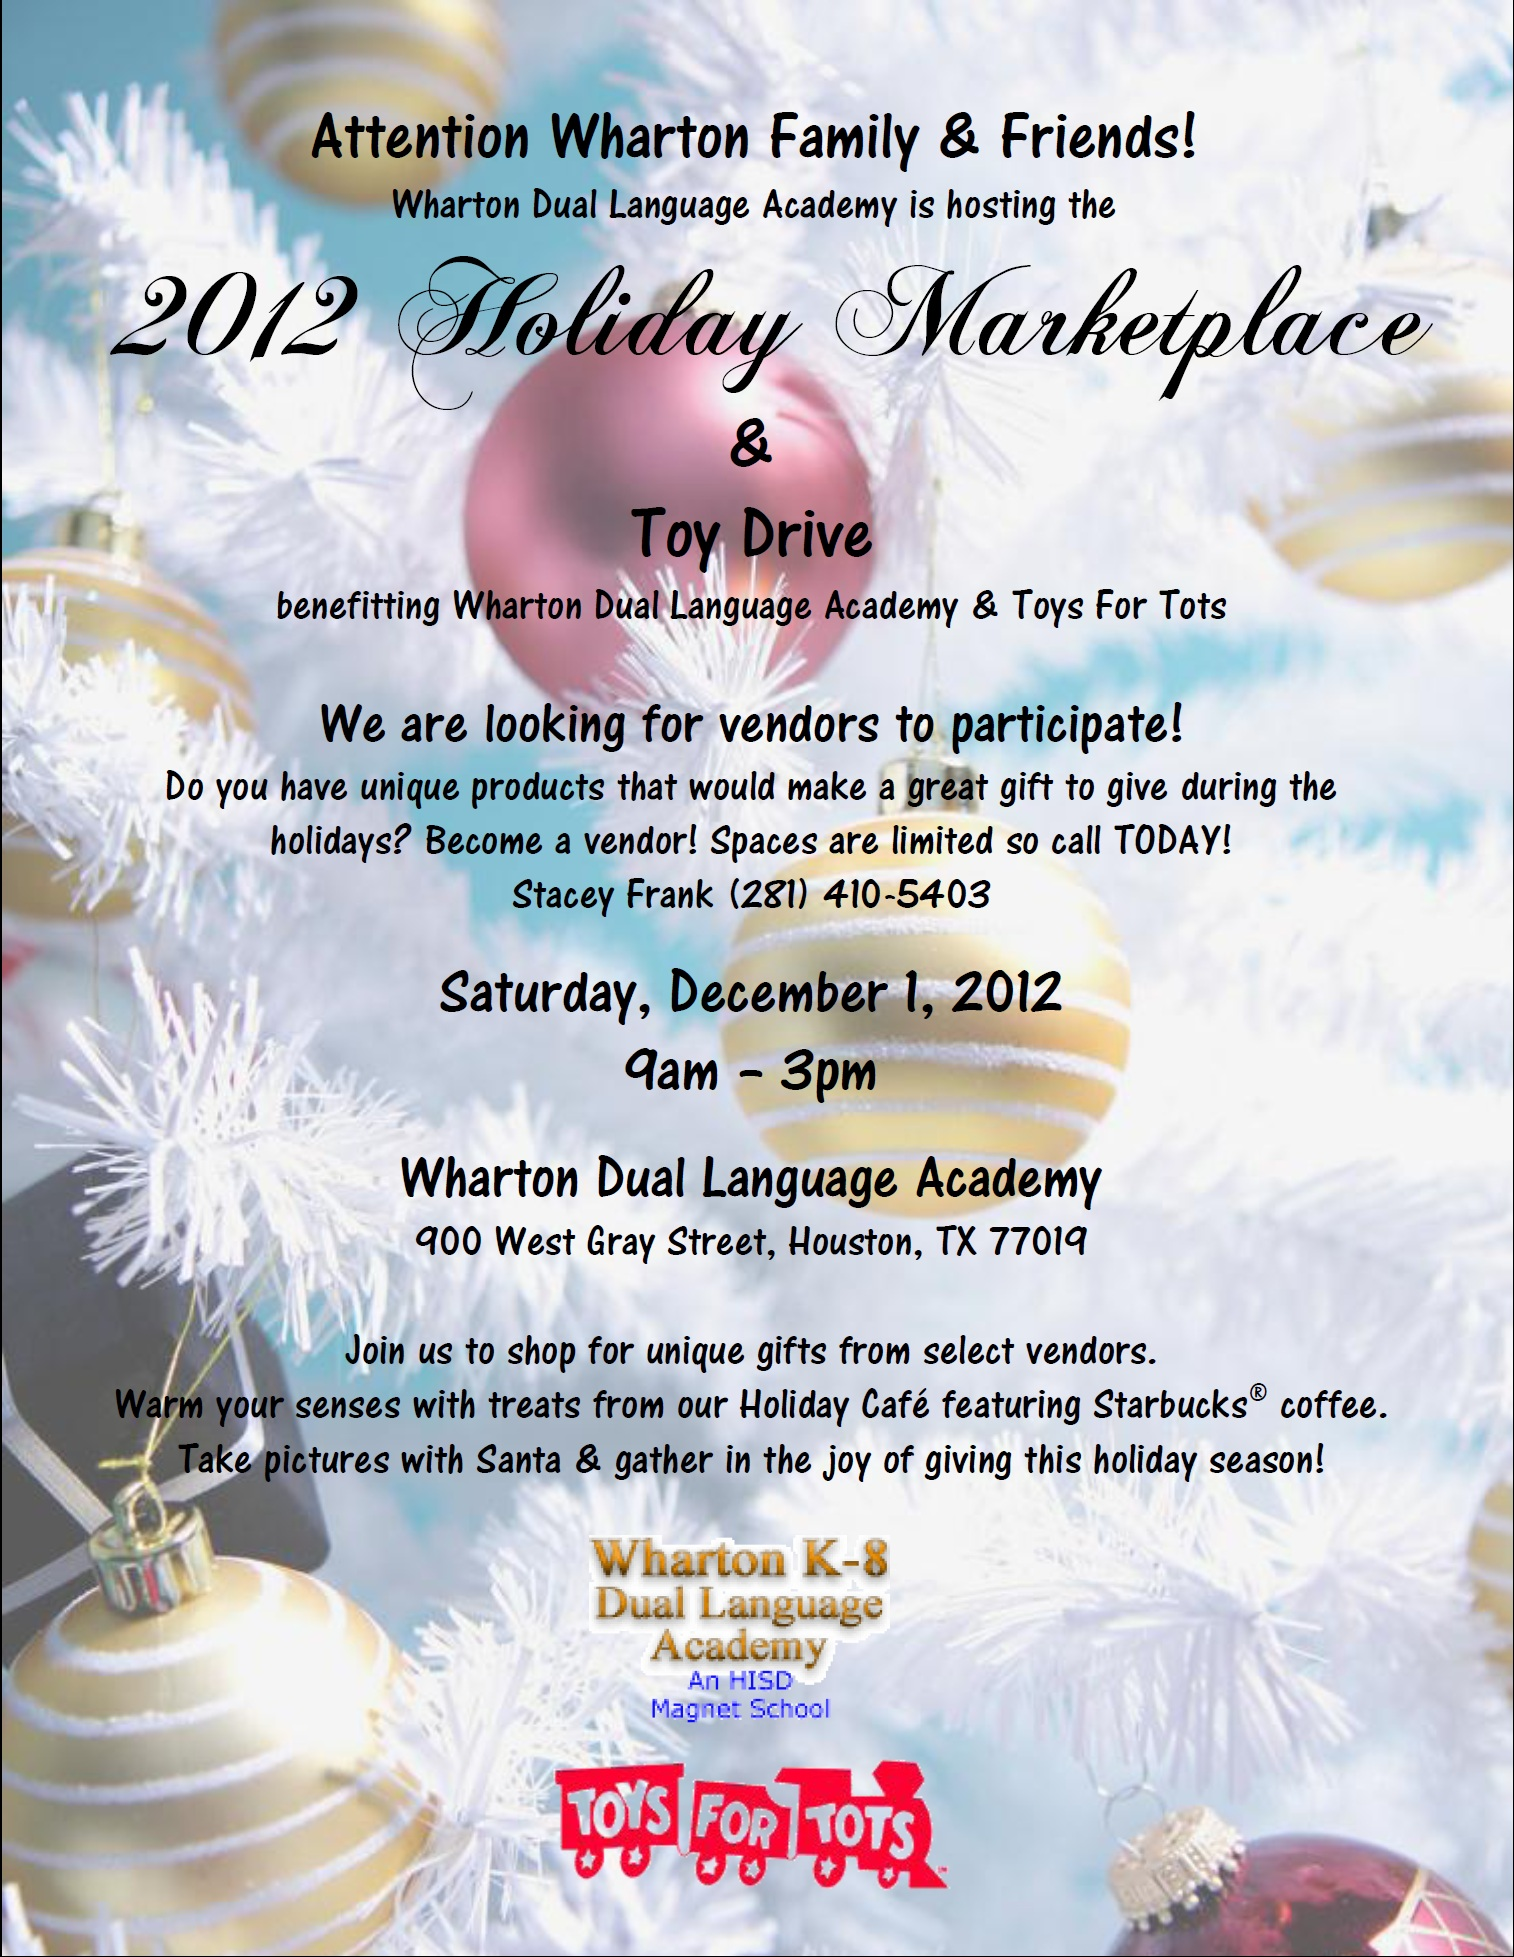 Holiday Marketplace Toy Drive